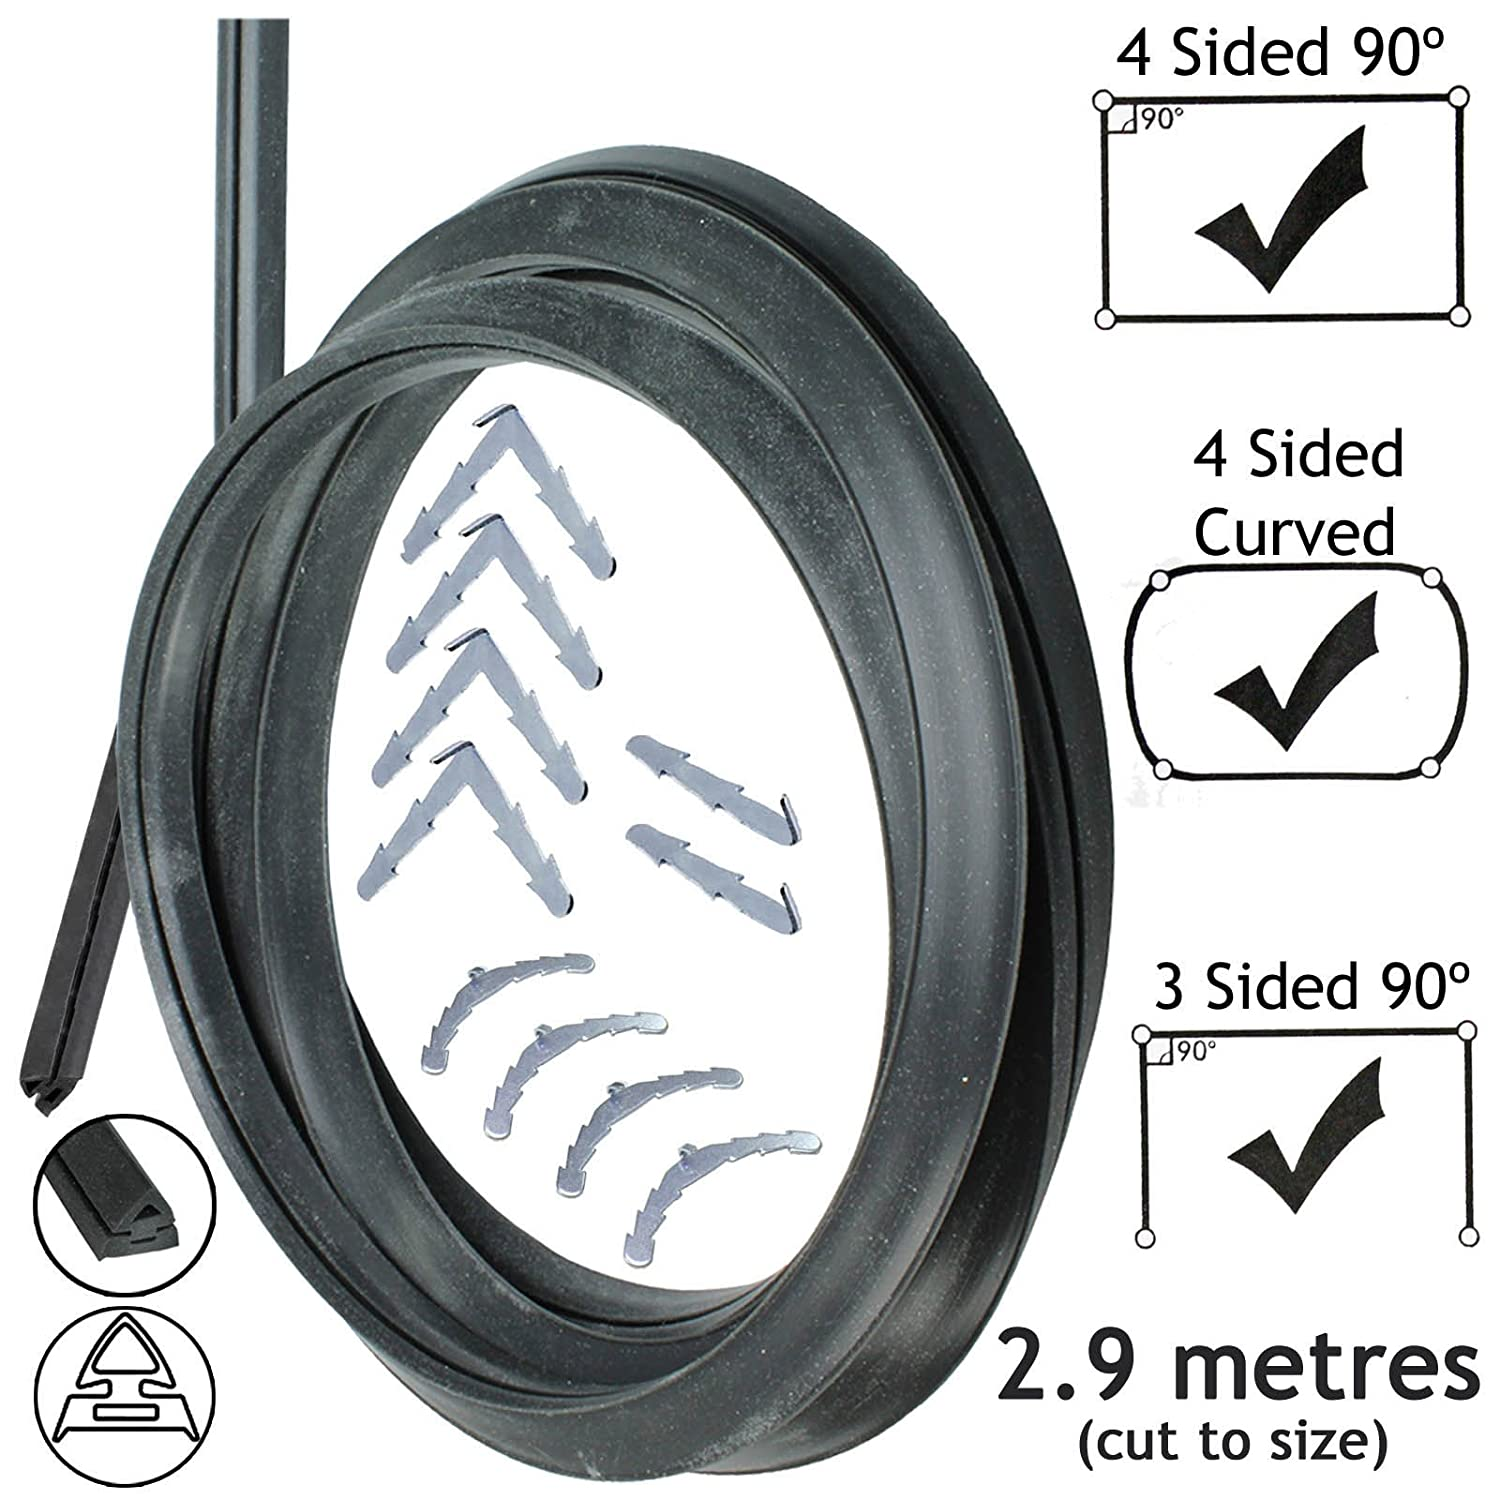 Spares2go 3m Cut to Size Door Seal For Stoves 3 or 4 Sided Oven Cooker Rounded or 90º Clips